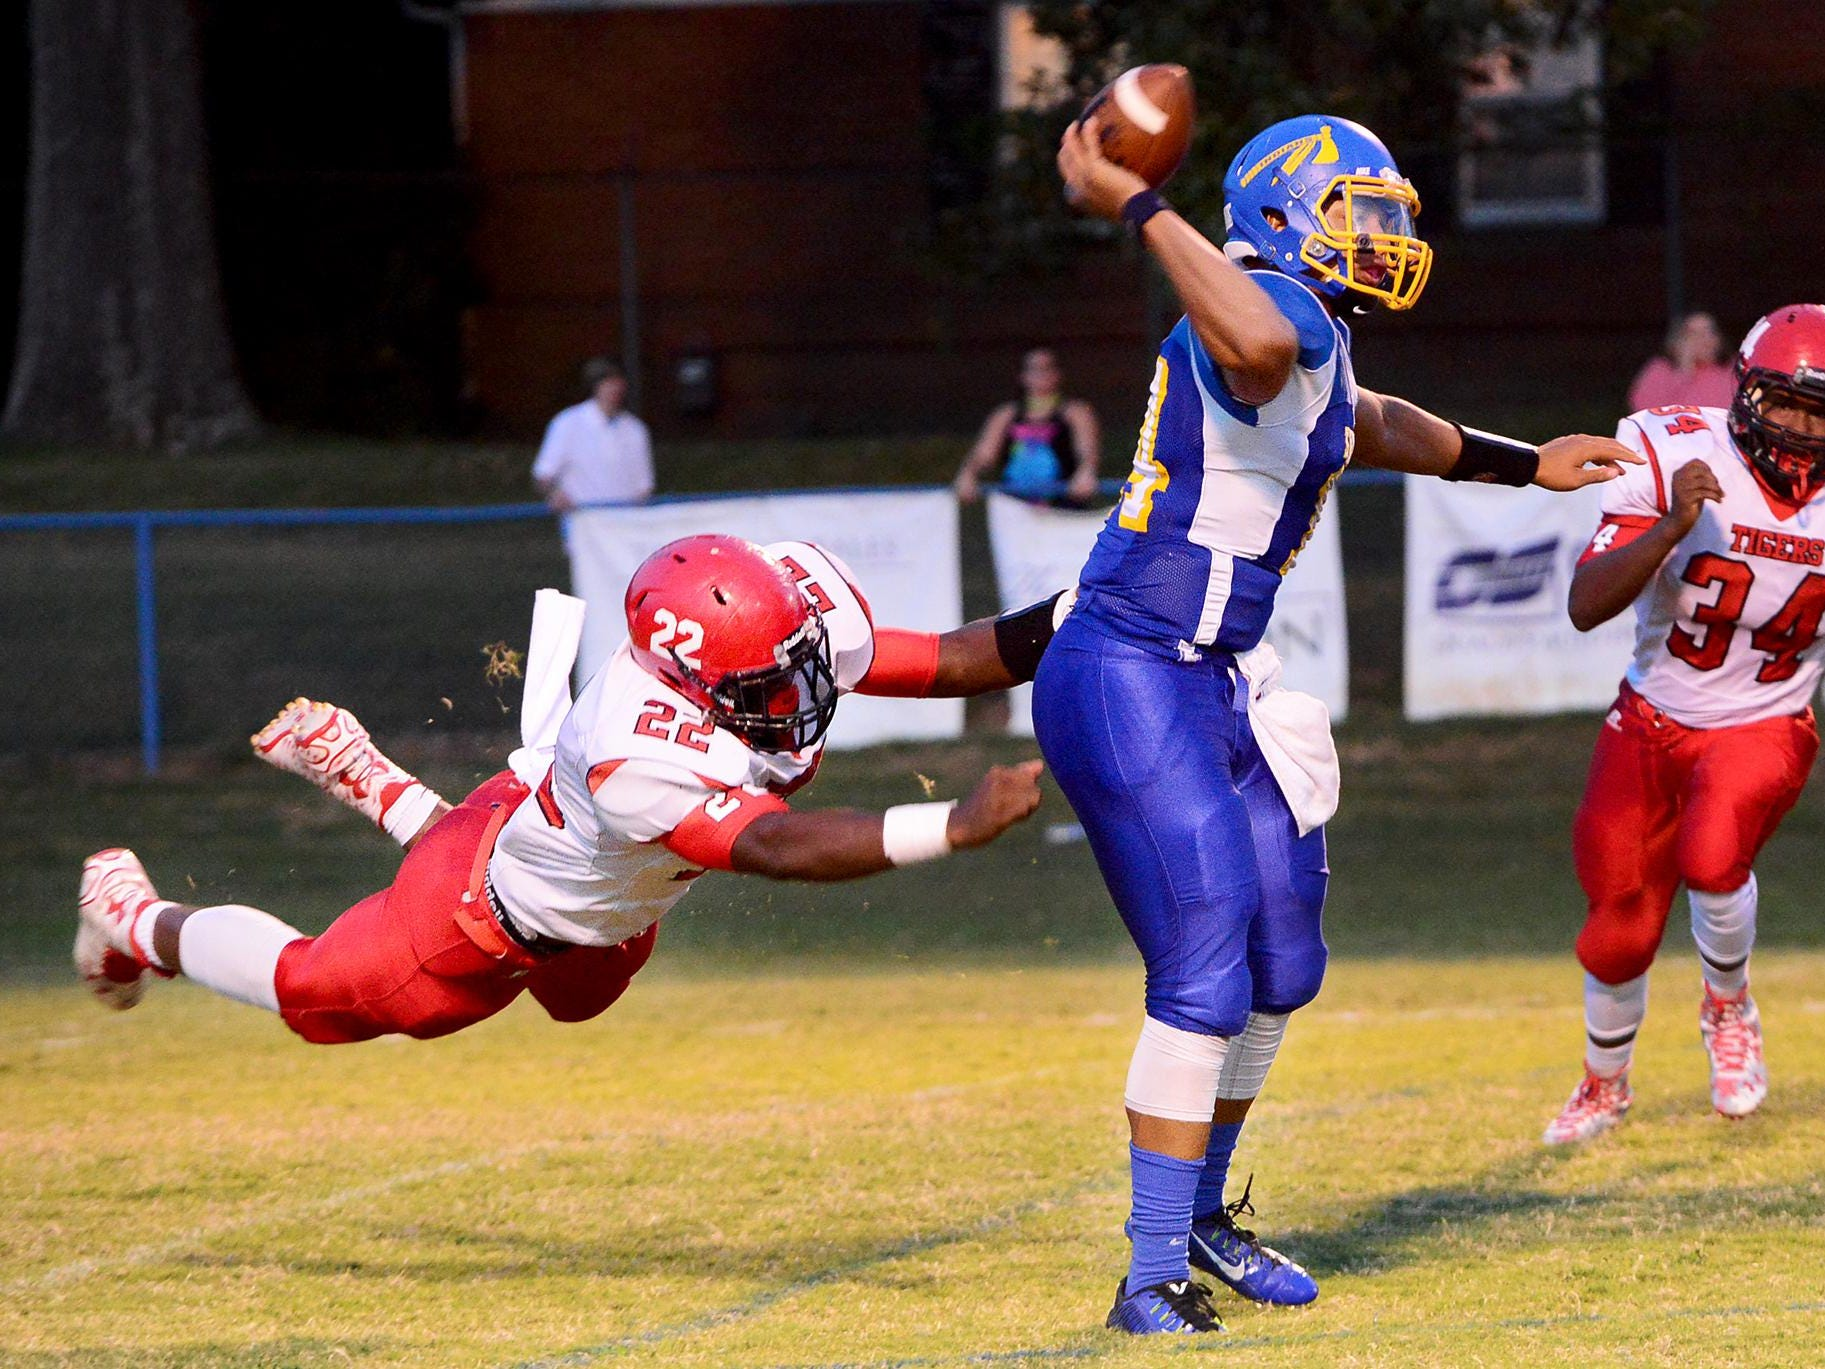 Lexington's Tariqious Tisdale reaches out to tackle North Side's Tyalen Shaw on Friday evening at North Side.